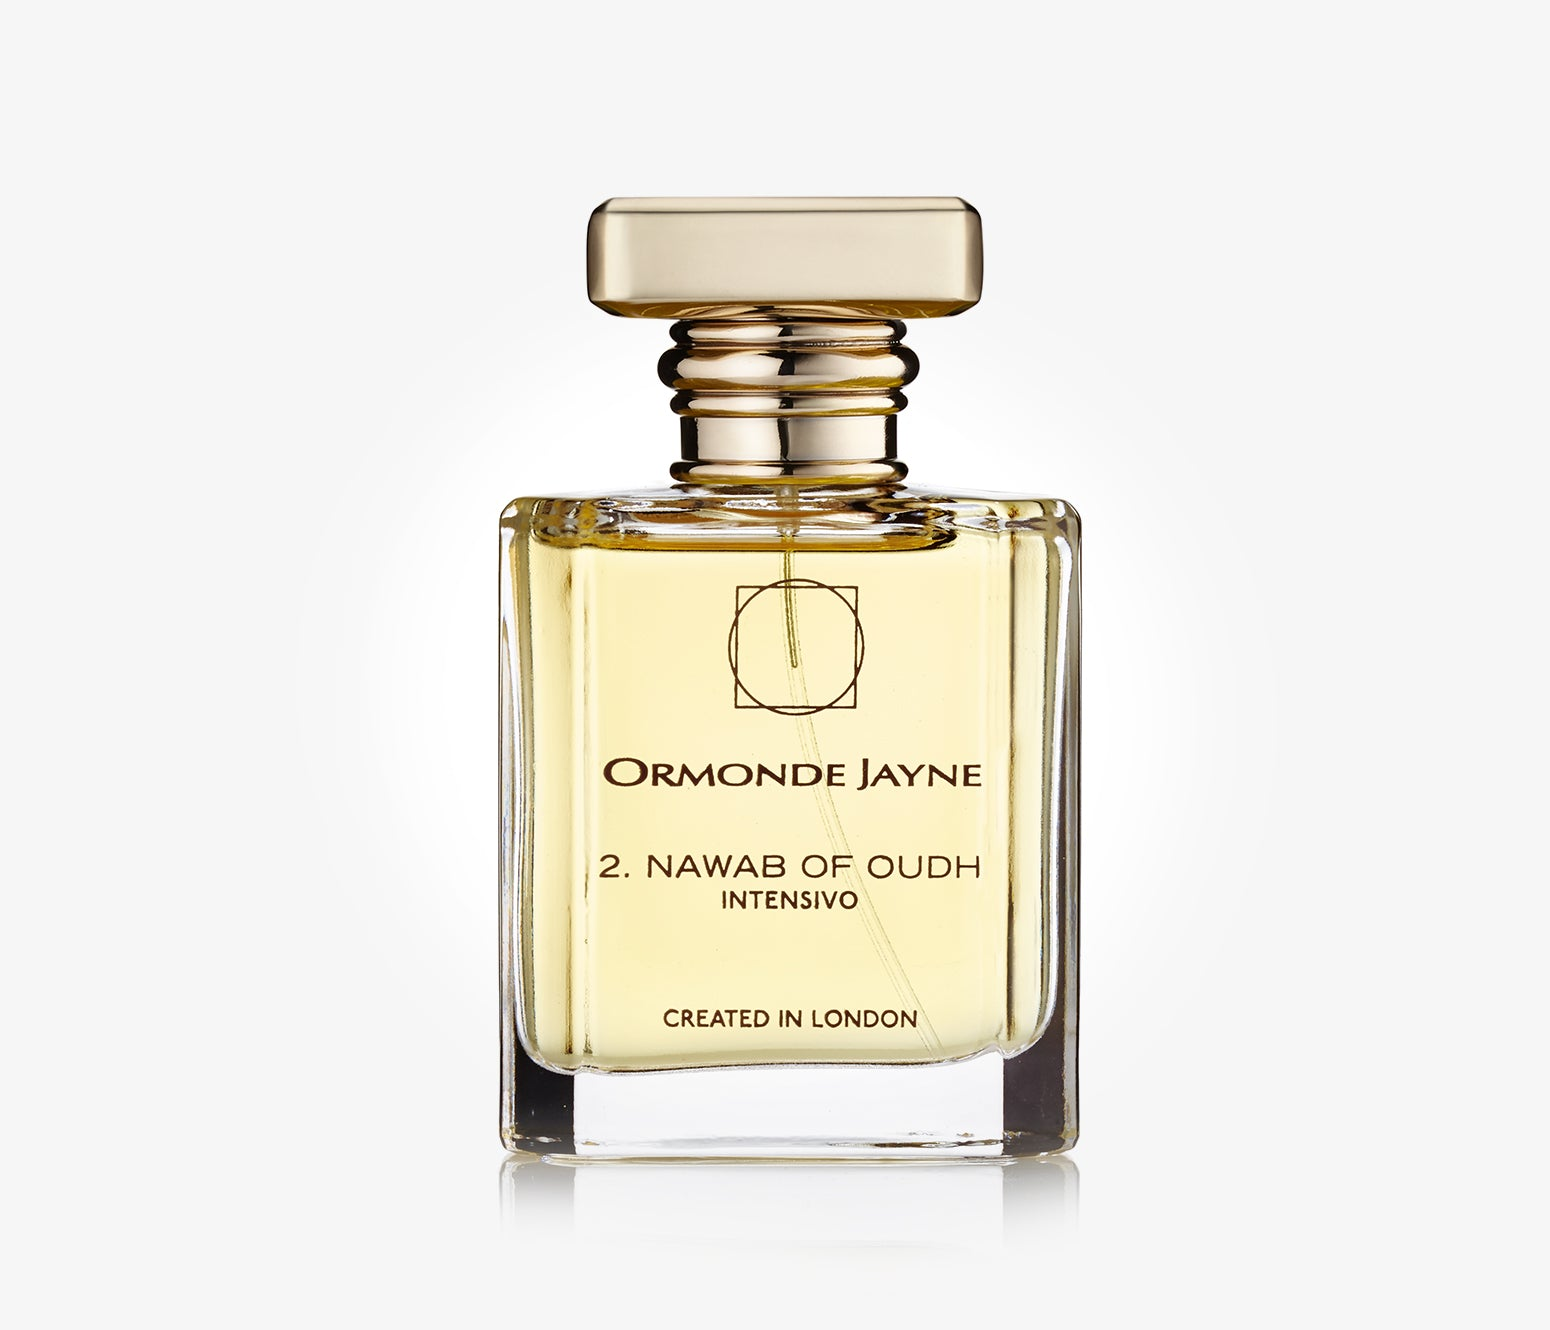 Ormonde Jayne - Nawab of Oud - 50ml - SVH001 - Product Image - Fragrance - Les Senteurs